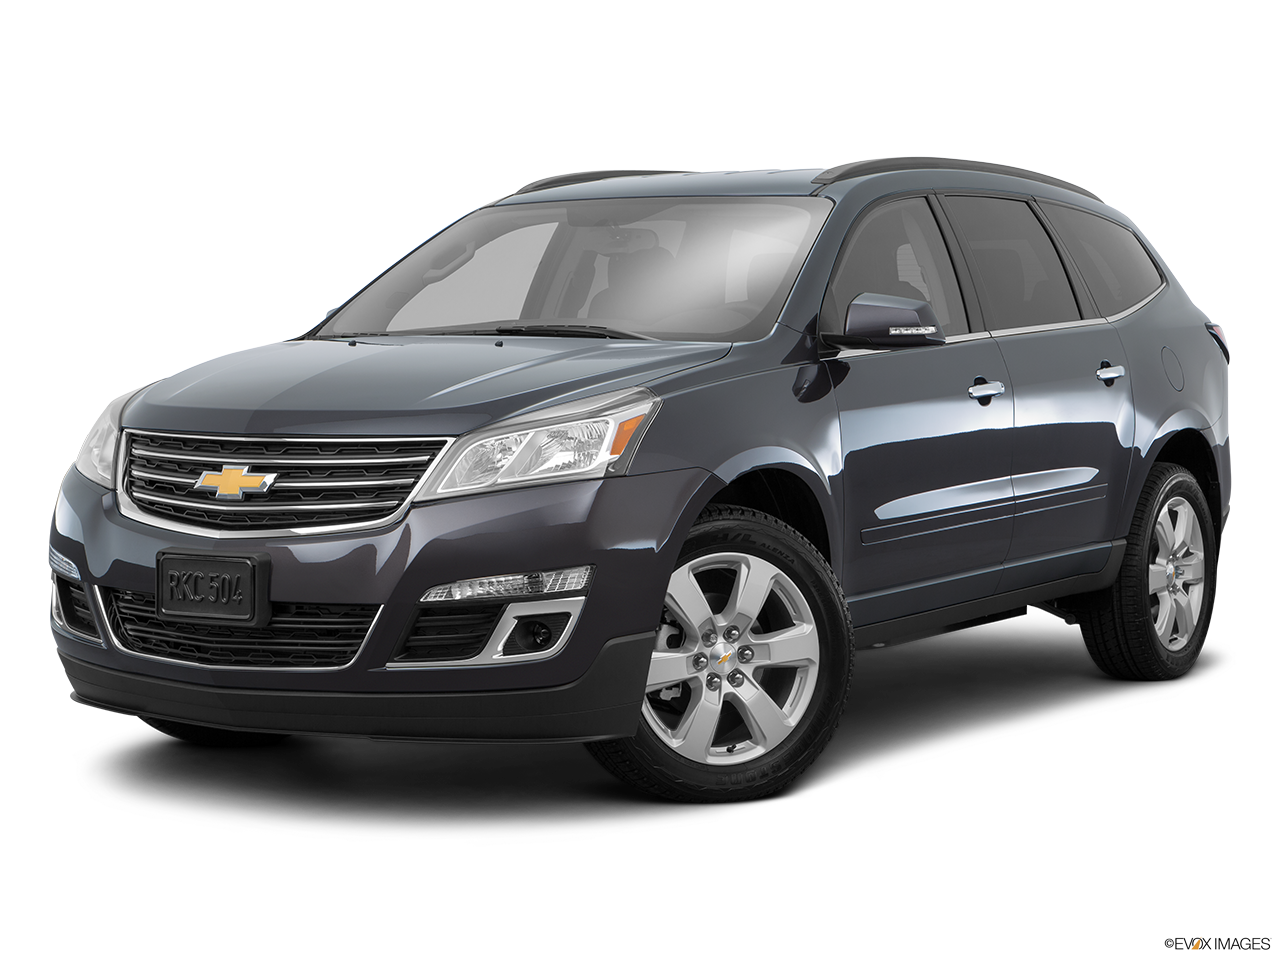 Webb Chevrolet >> 2016 Chevrolet Traverse Chicago | Webb Chevrolet